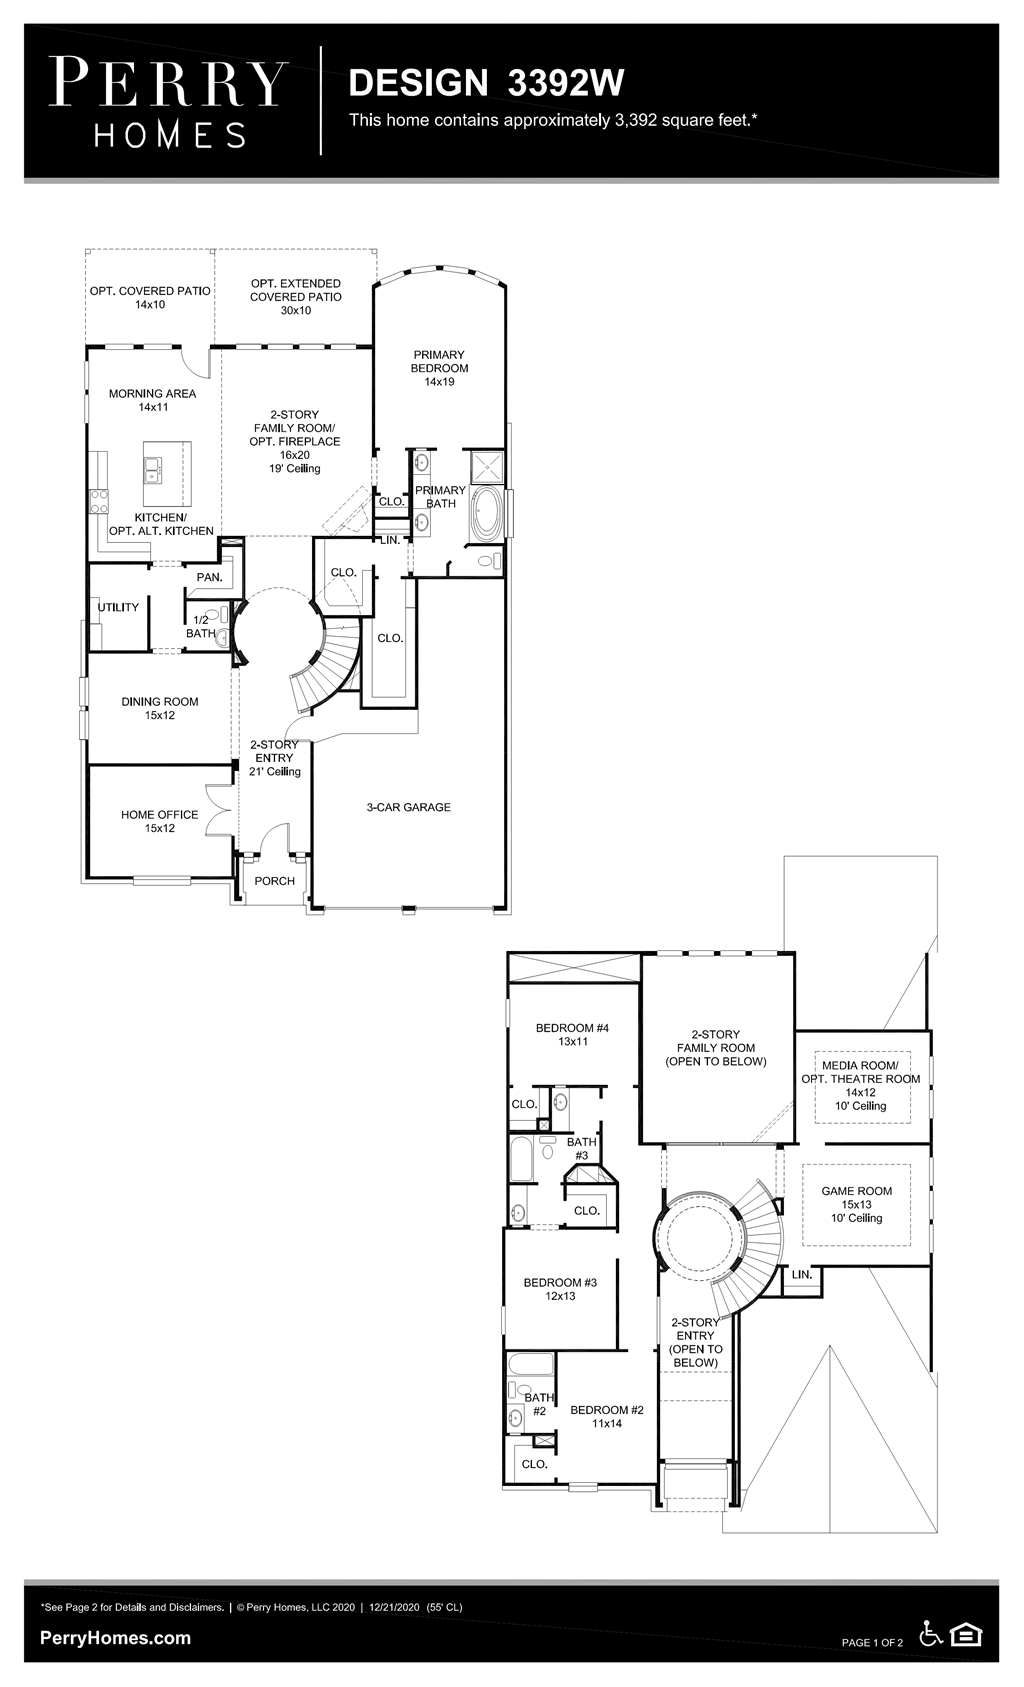 Floor Plan for 3392W